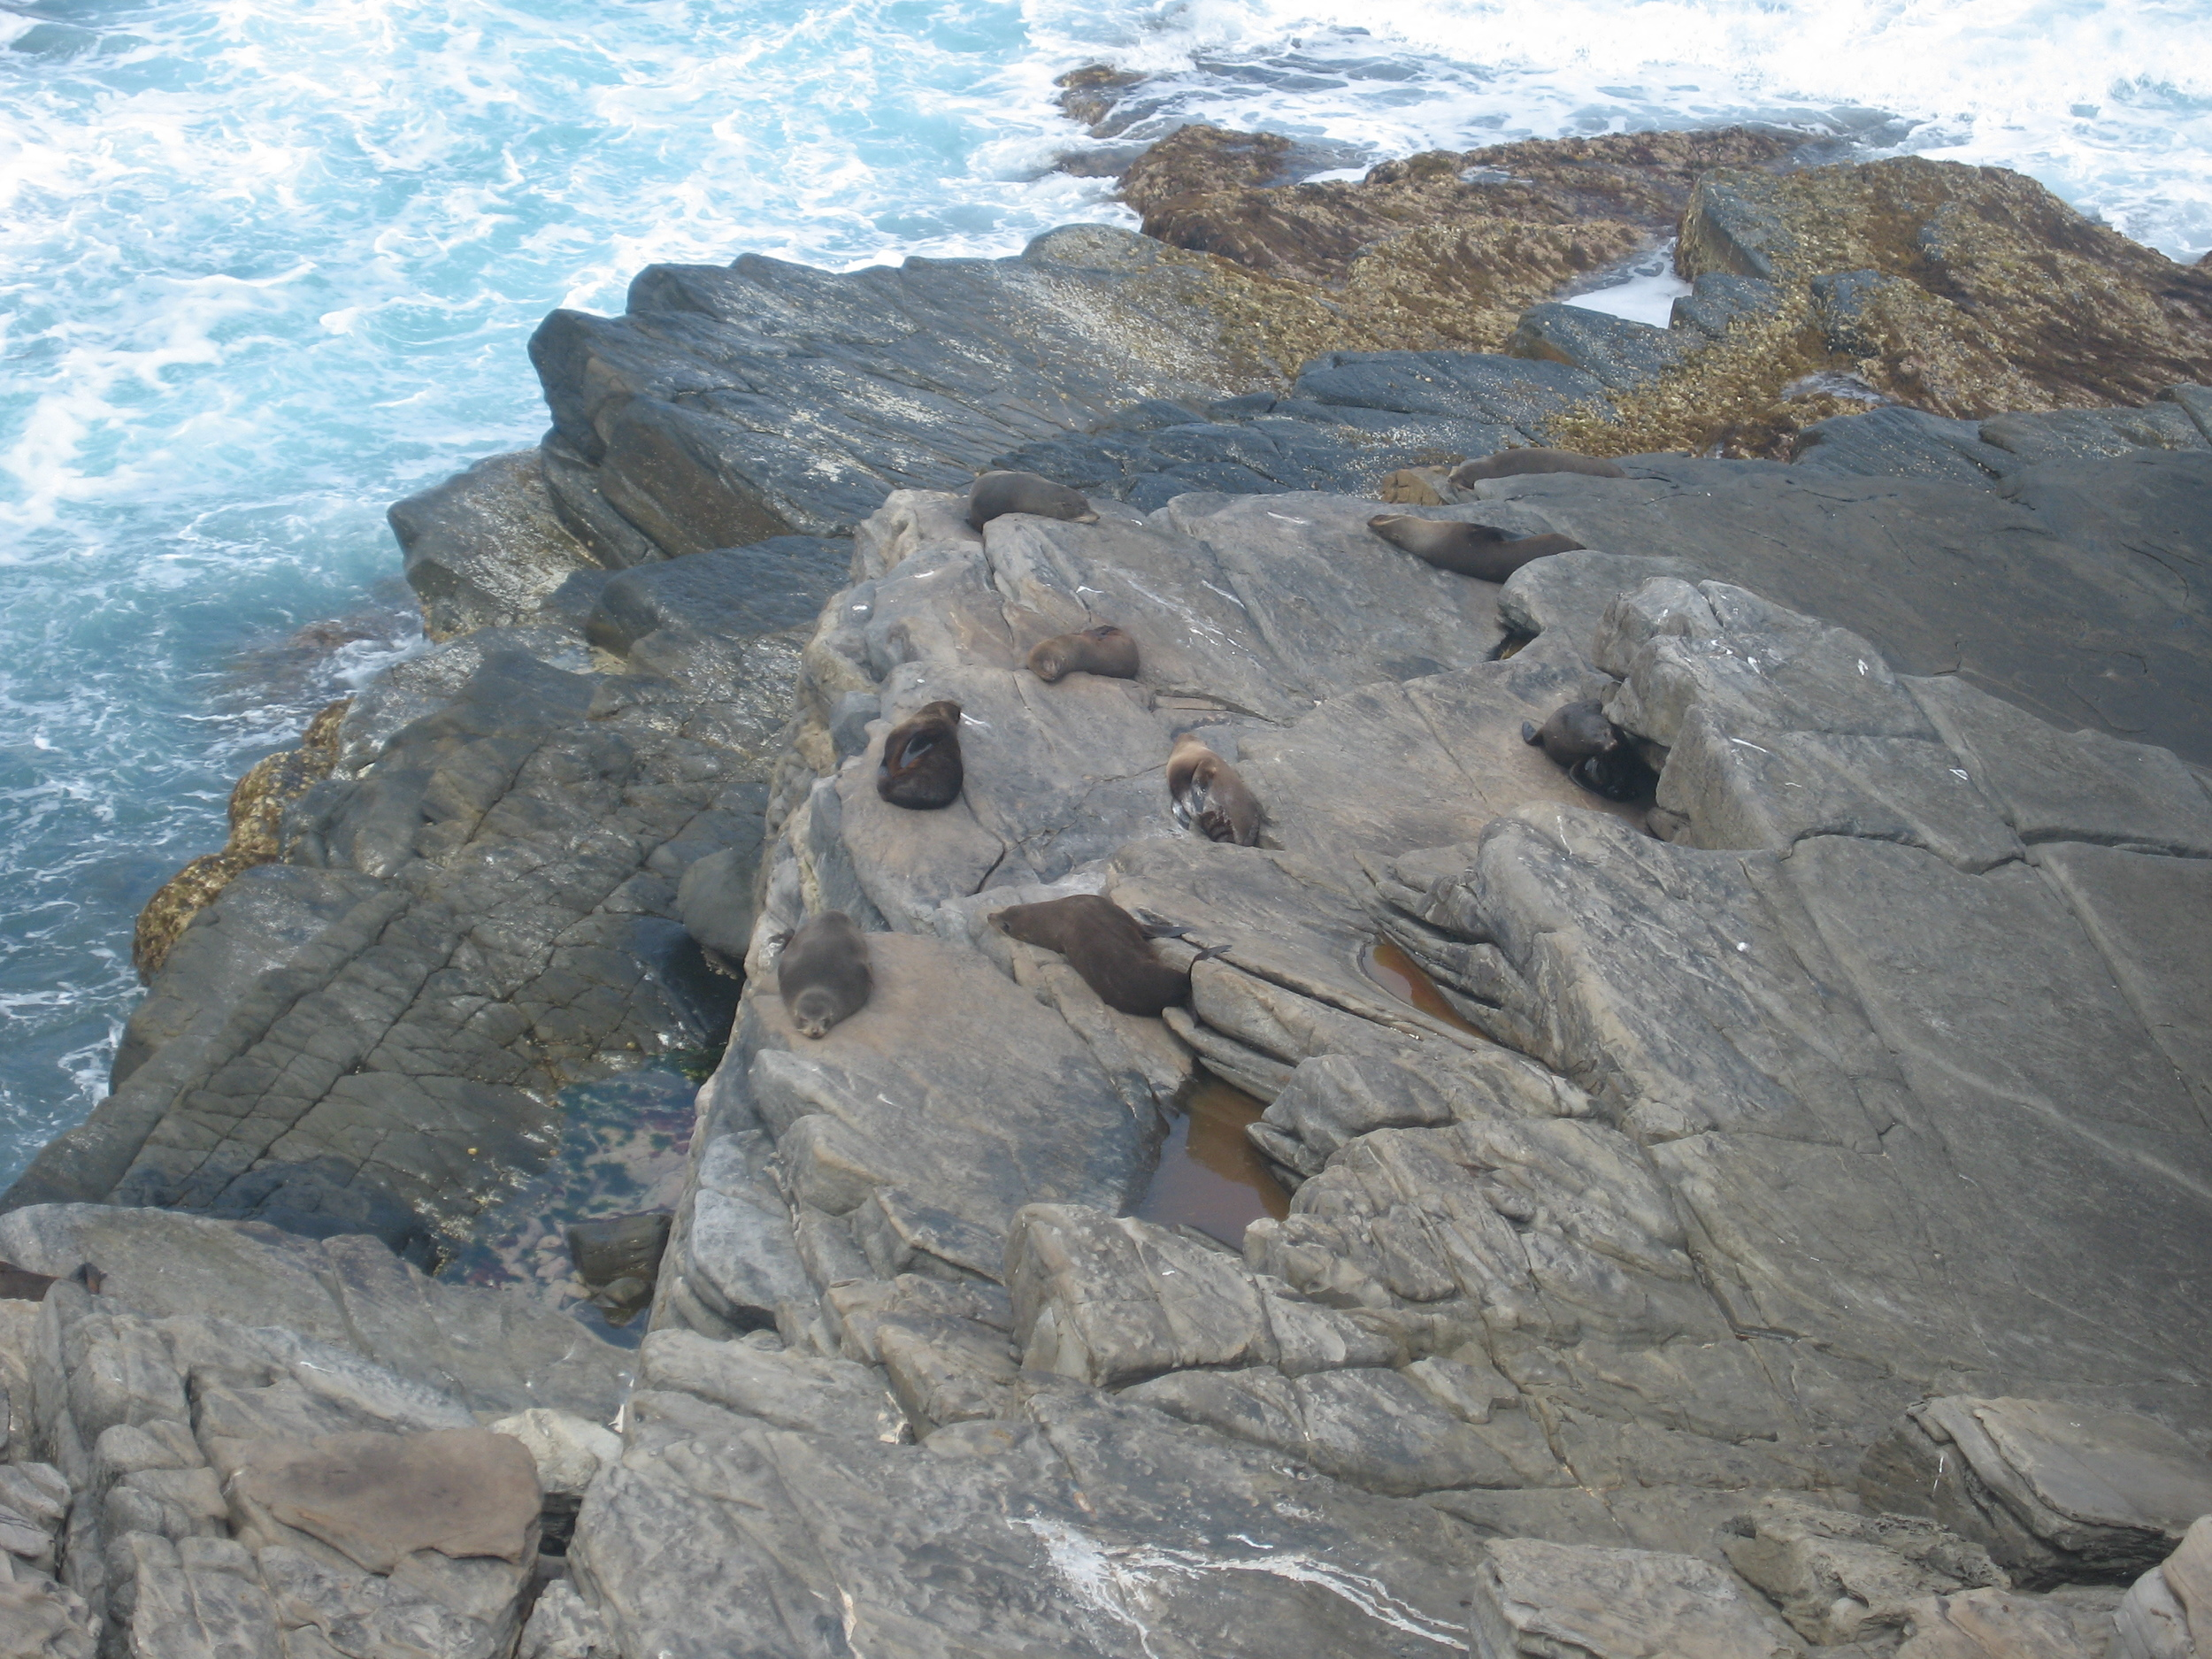 Sea Lions at Admiral's Arch!